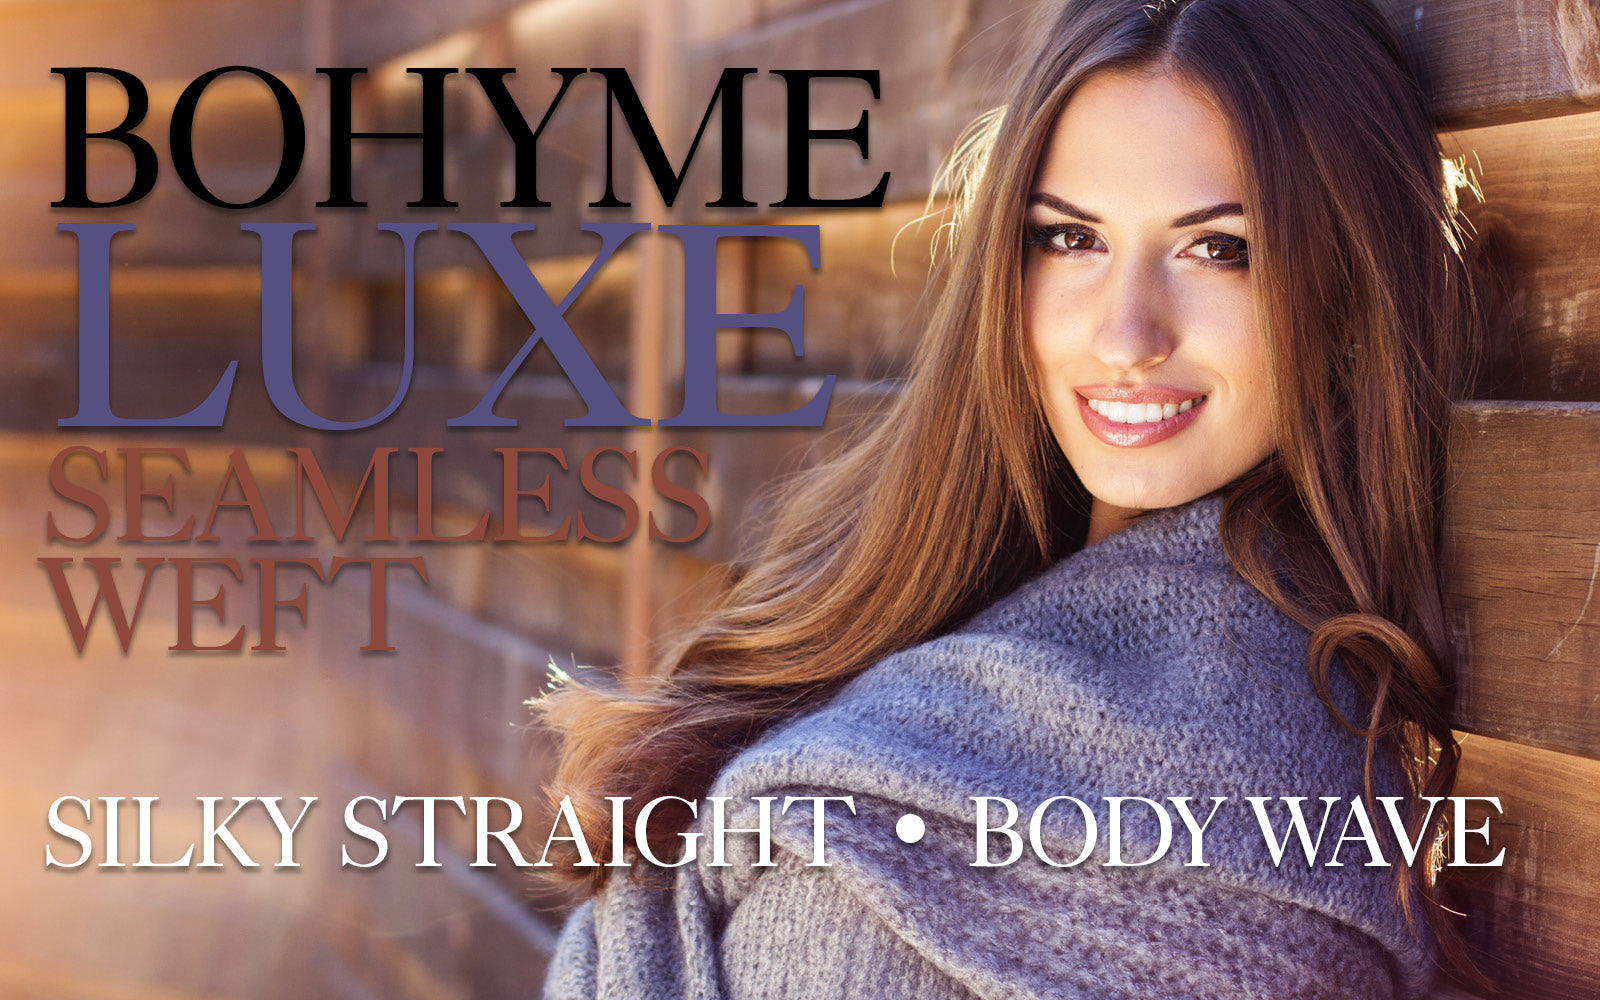 Bohyme Luxe Seamless Weft Extensions